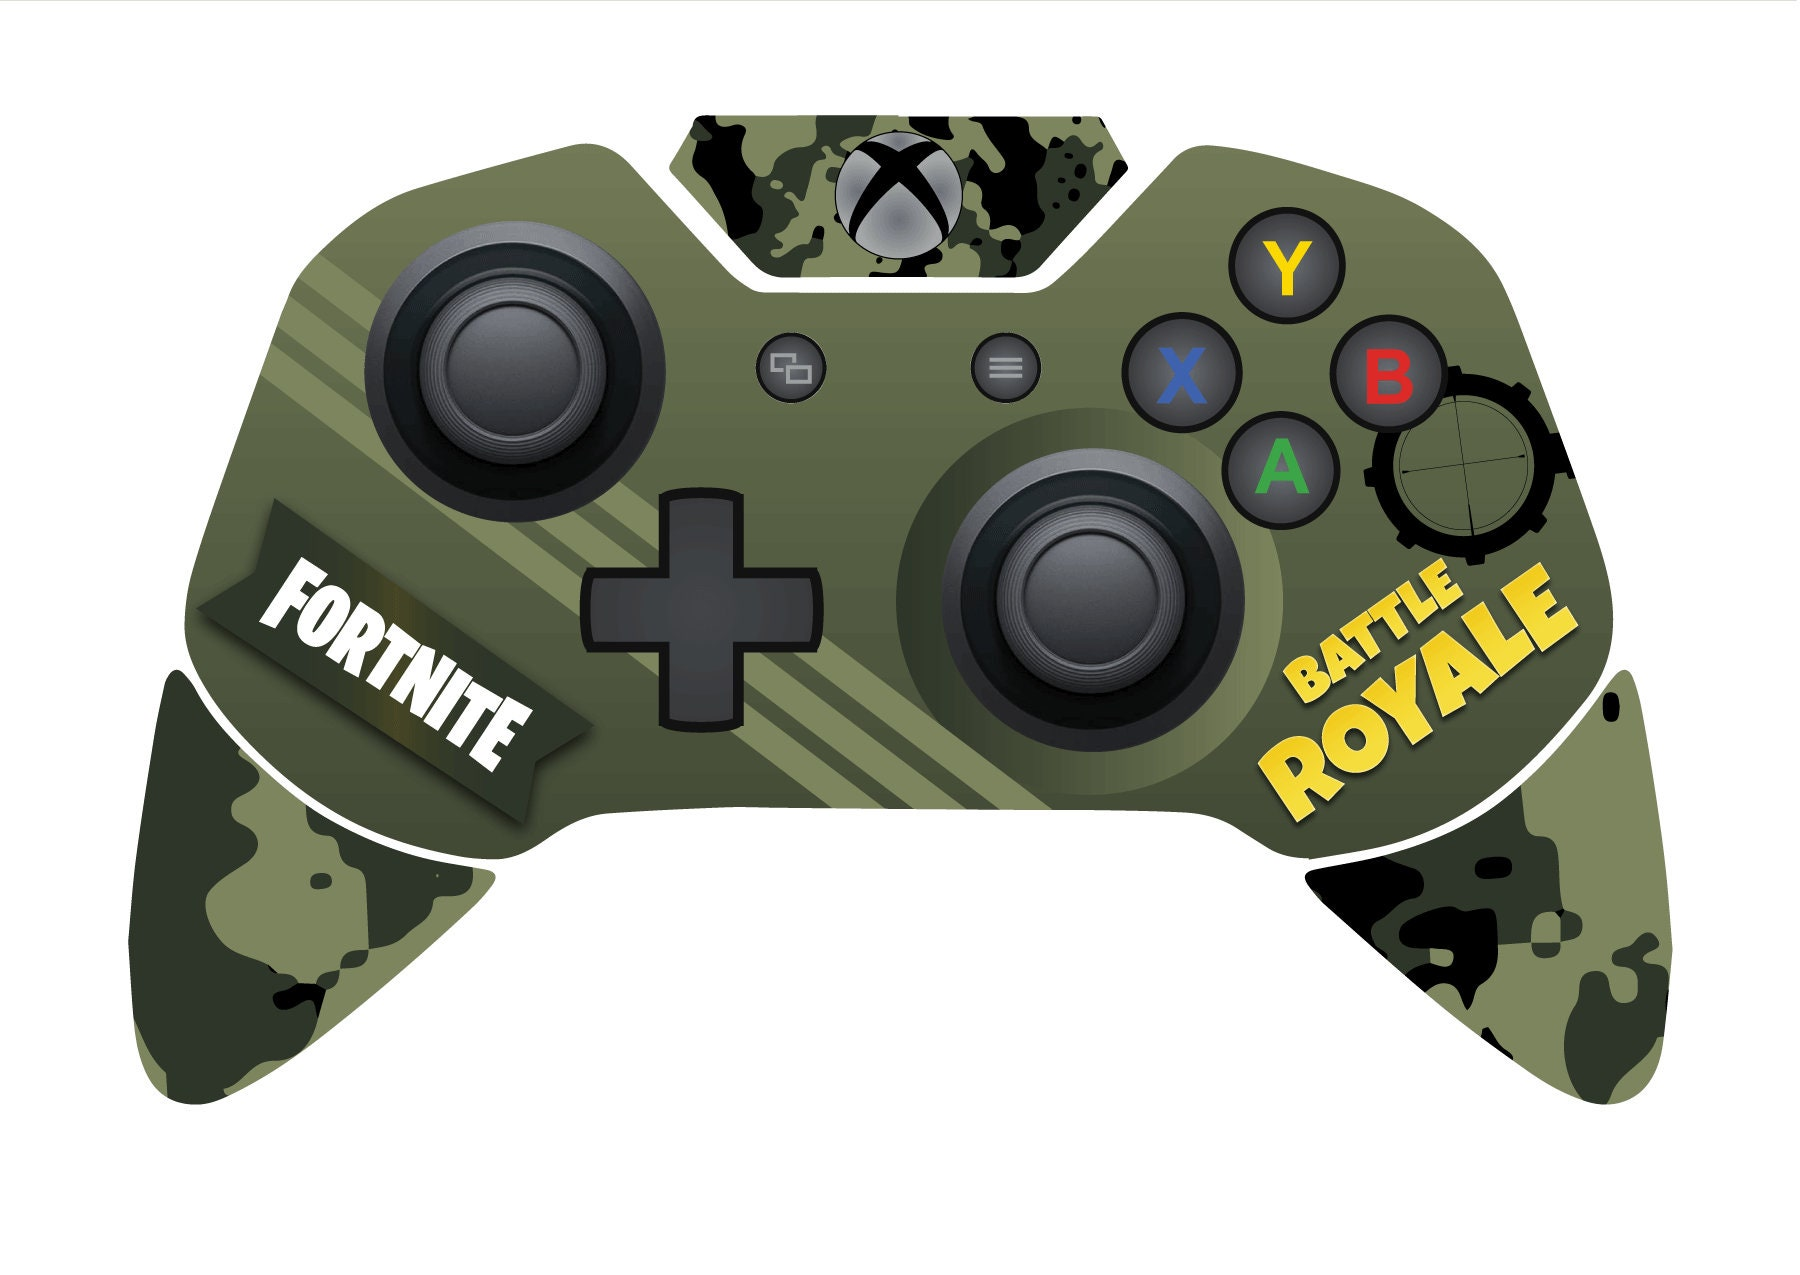 Battle Royale Xbox One Controller Skin Inspired By Fortnite